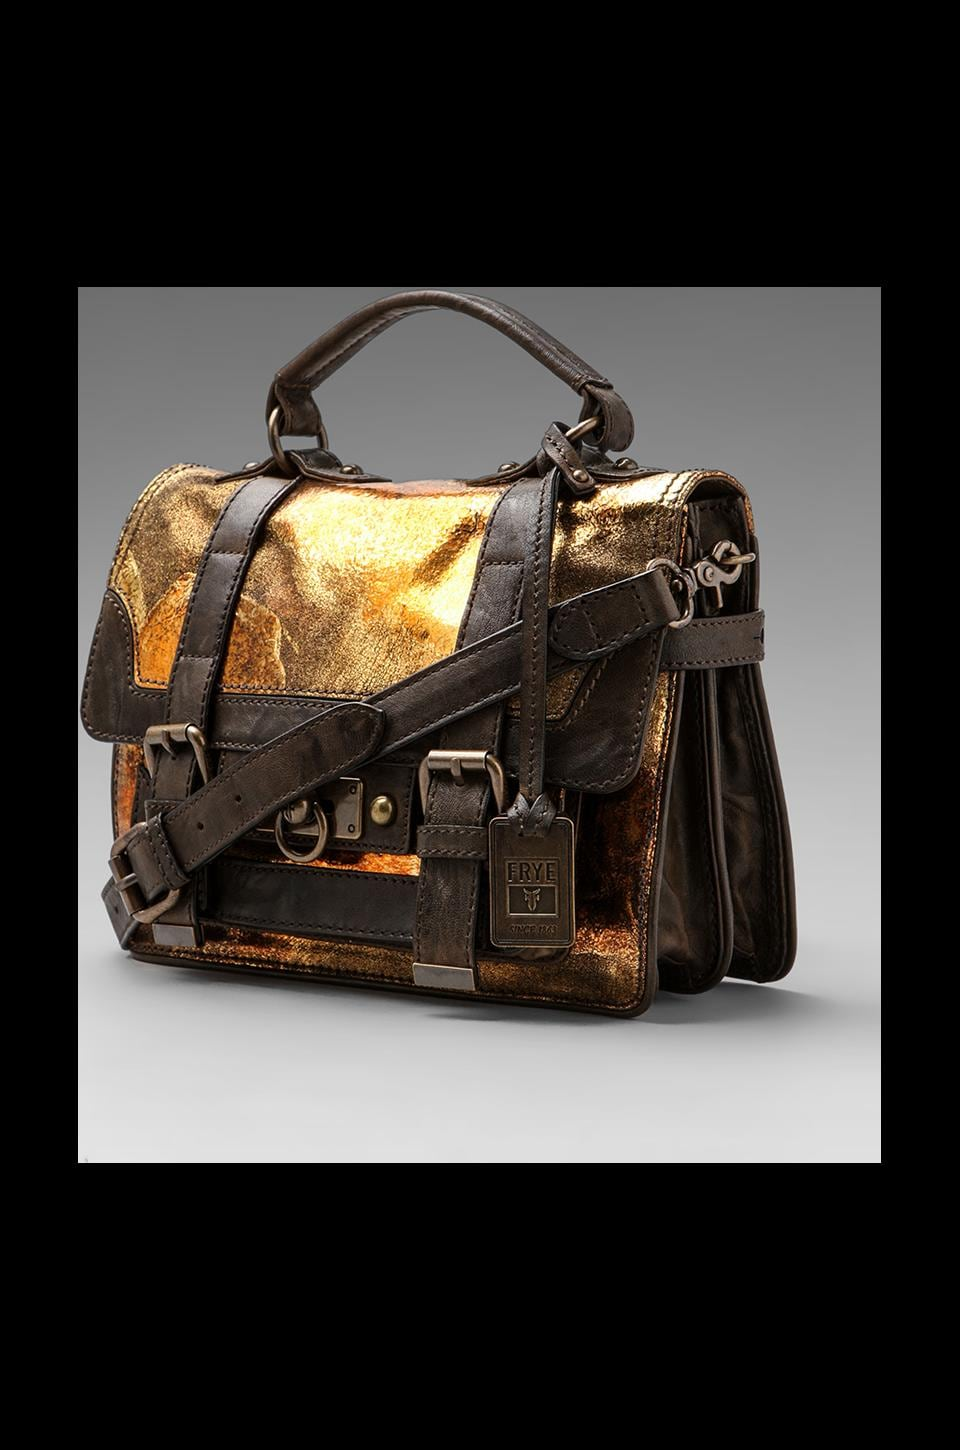 Frye Cameron Small Satchel in Metallic Cracked Gold